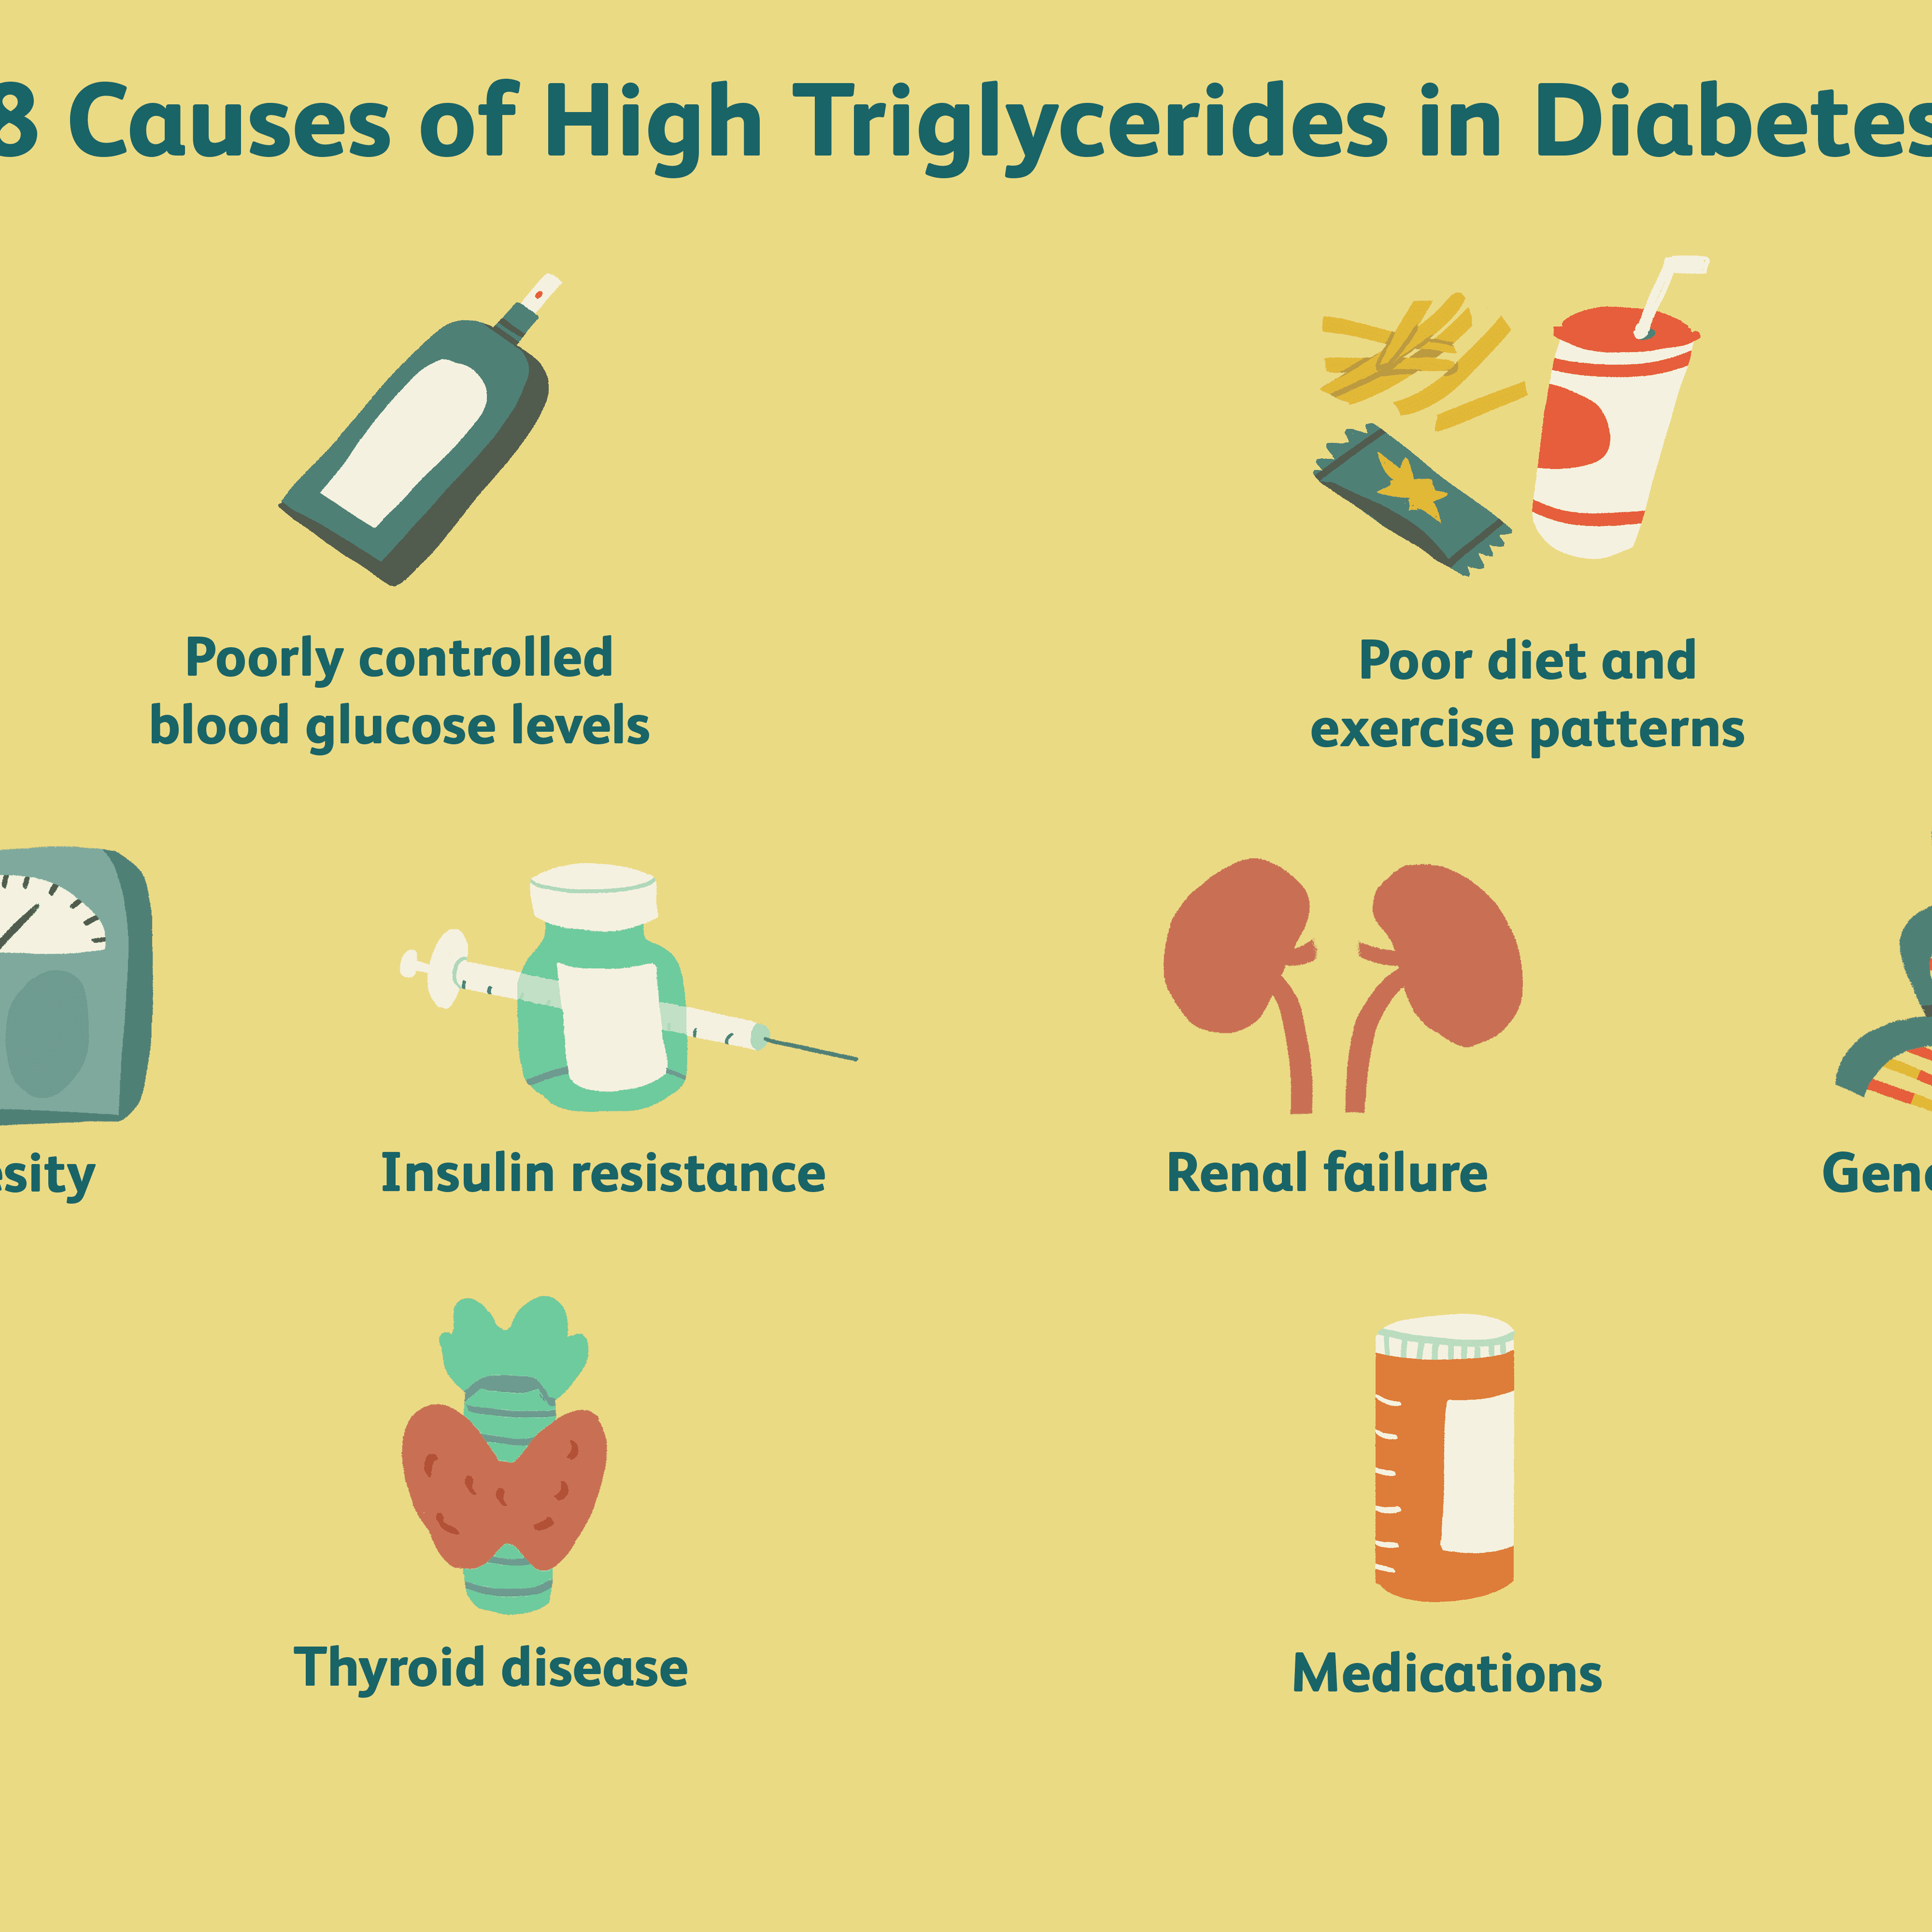 10 Causes Of High Triglycerides In Diabetes